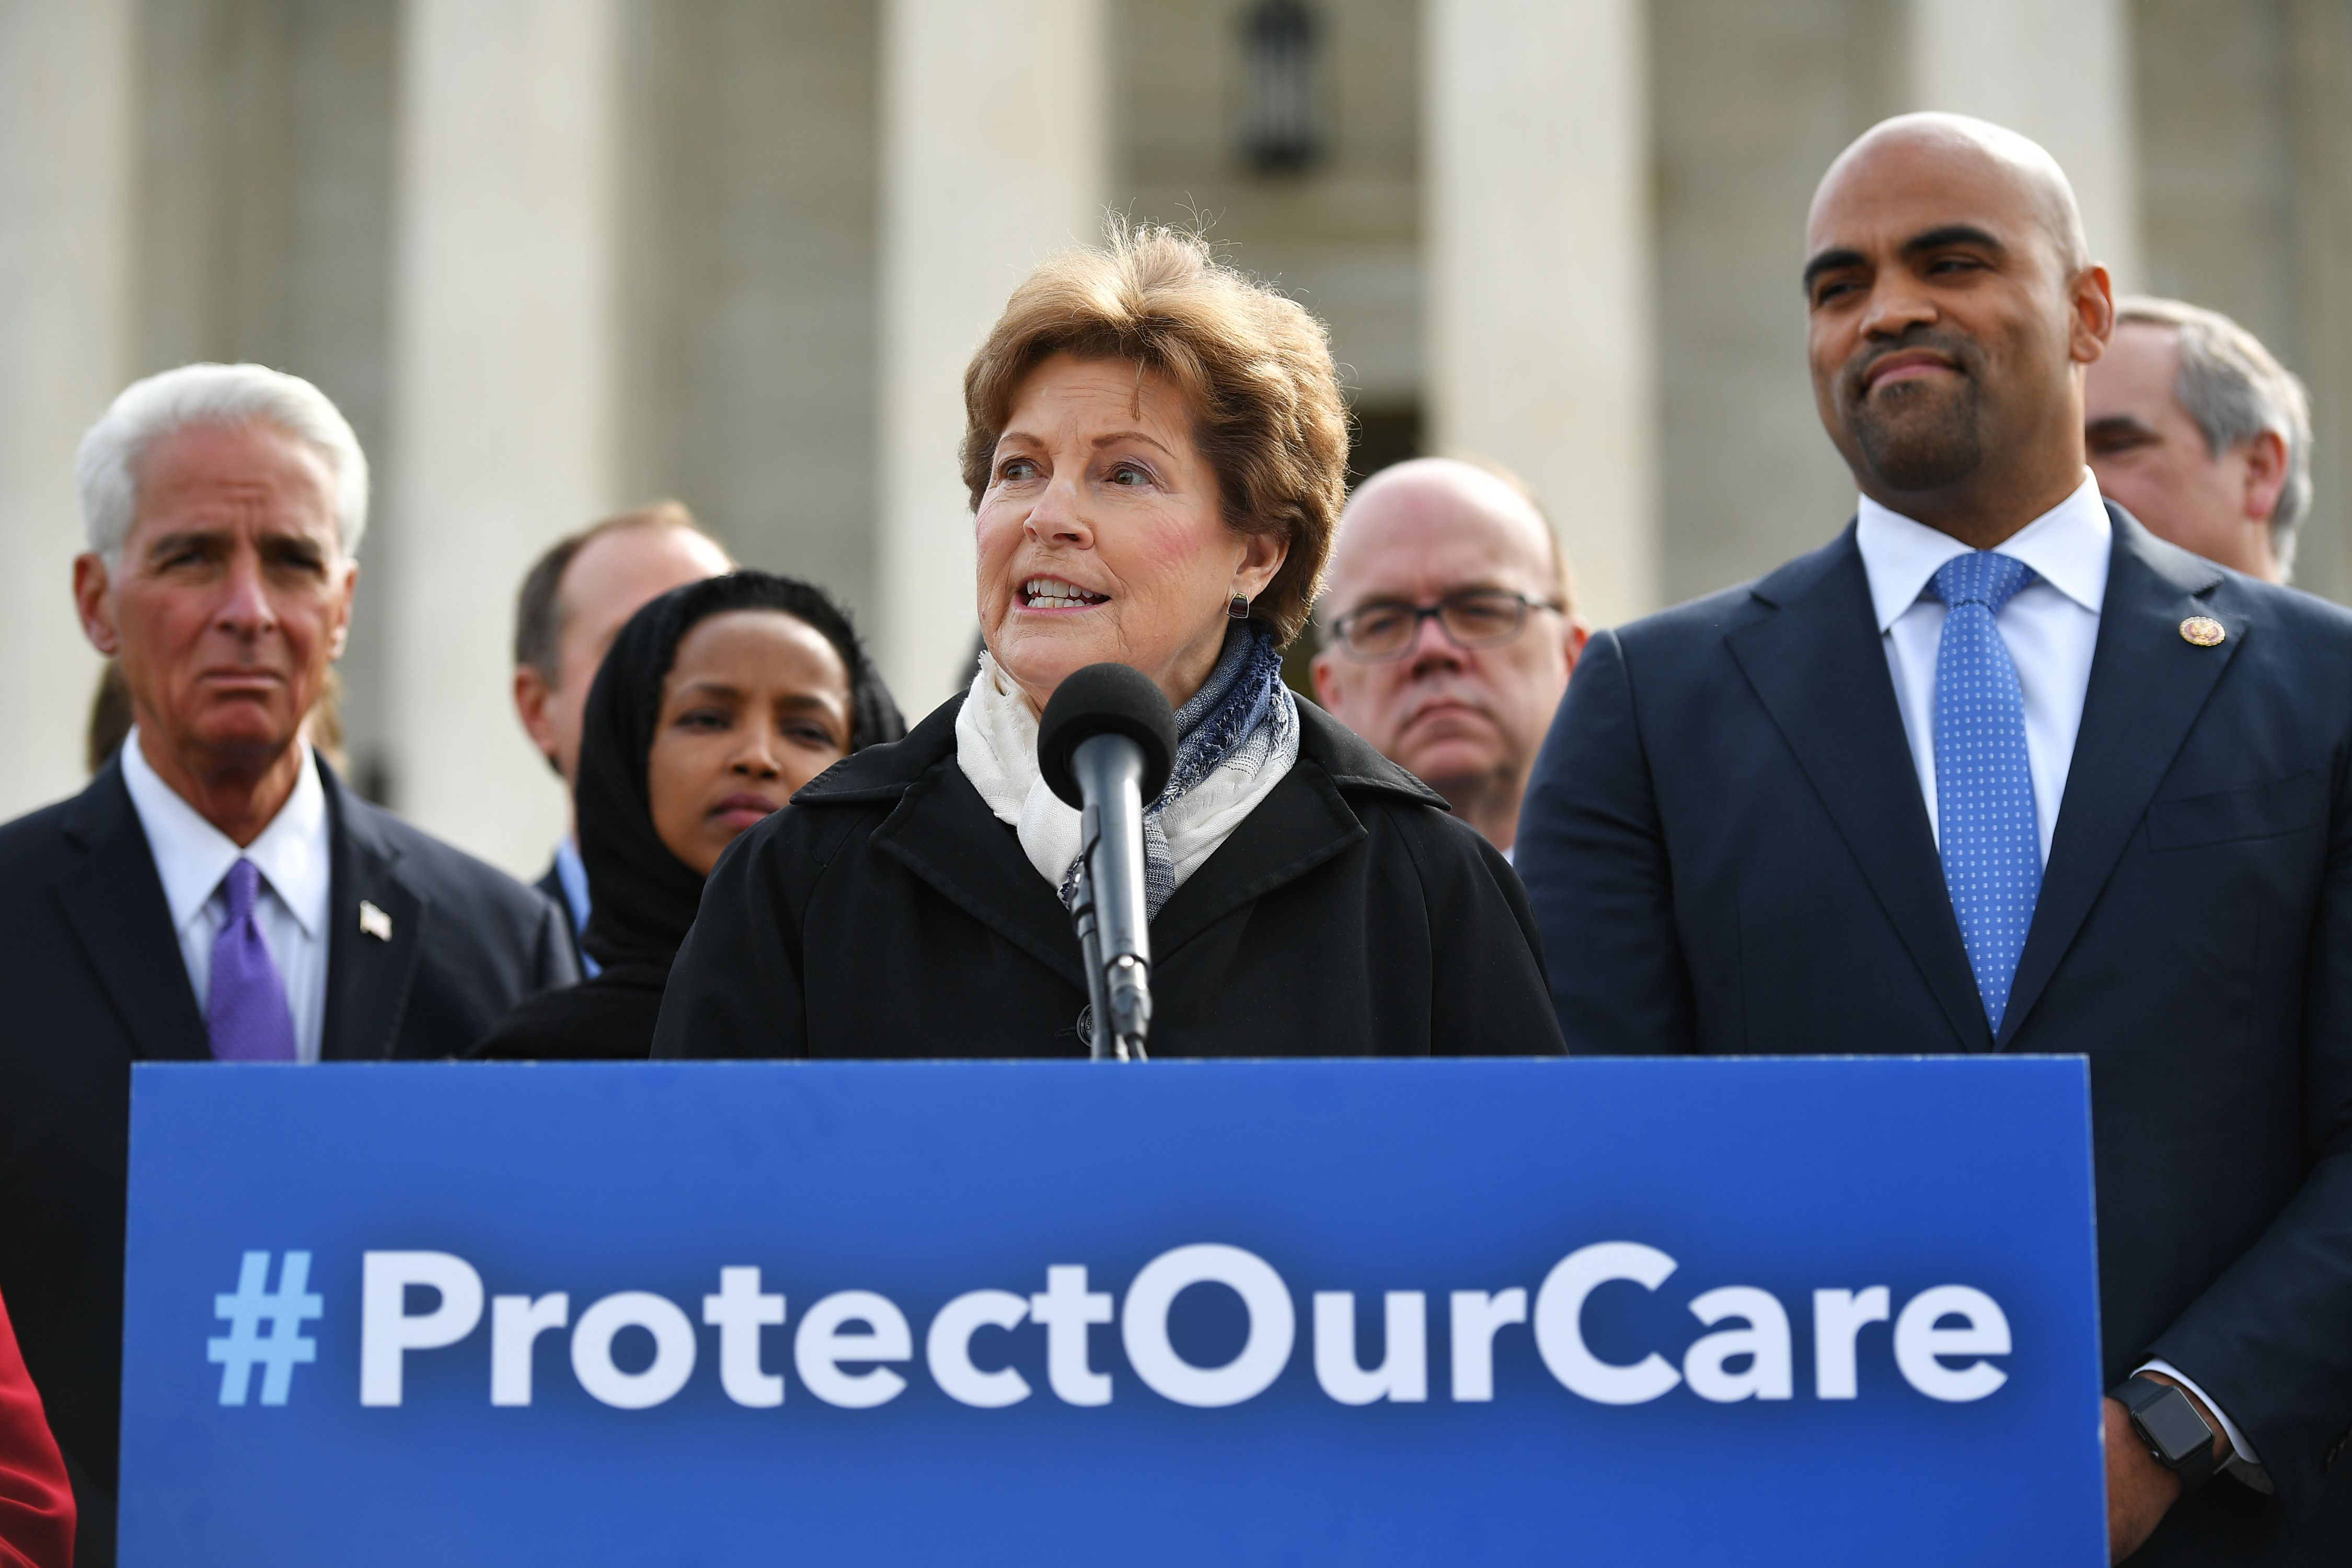 Senator Jeanne Shaheen, D-NH, speaks during an event to call for the protection affordable healthcare for those with preexisting conditions during a press conference on April 2, 2019. (Mandel Ngan/AFP/Getty Images)